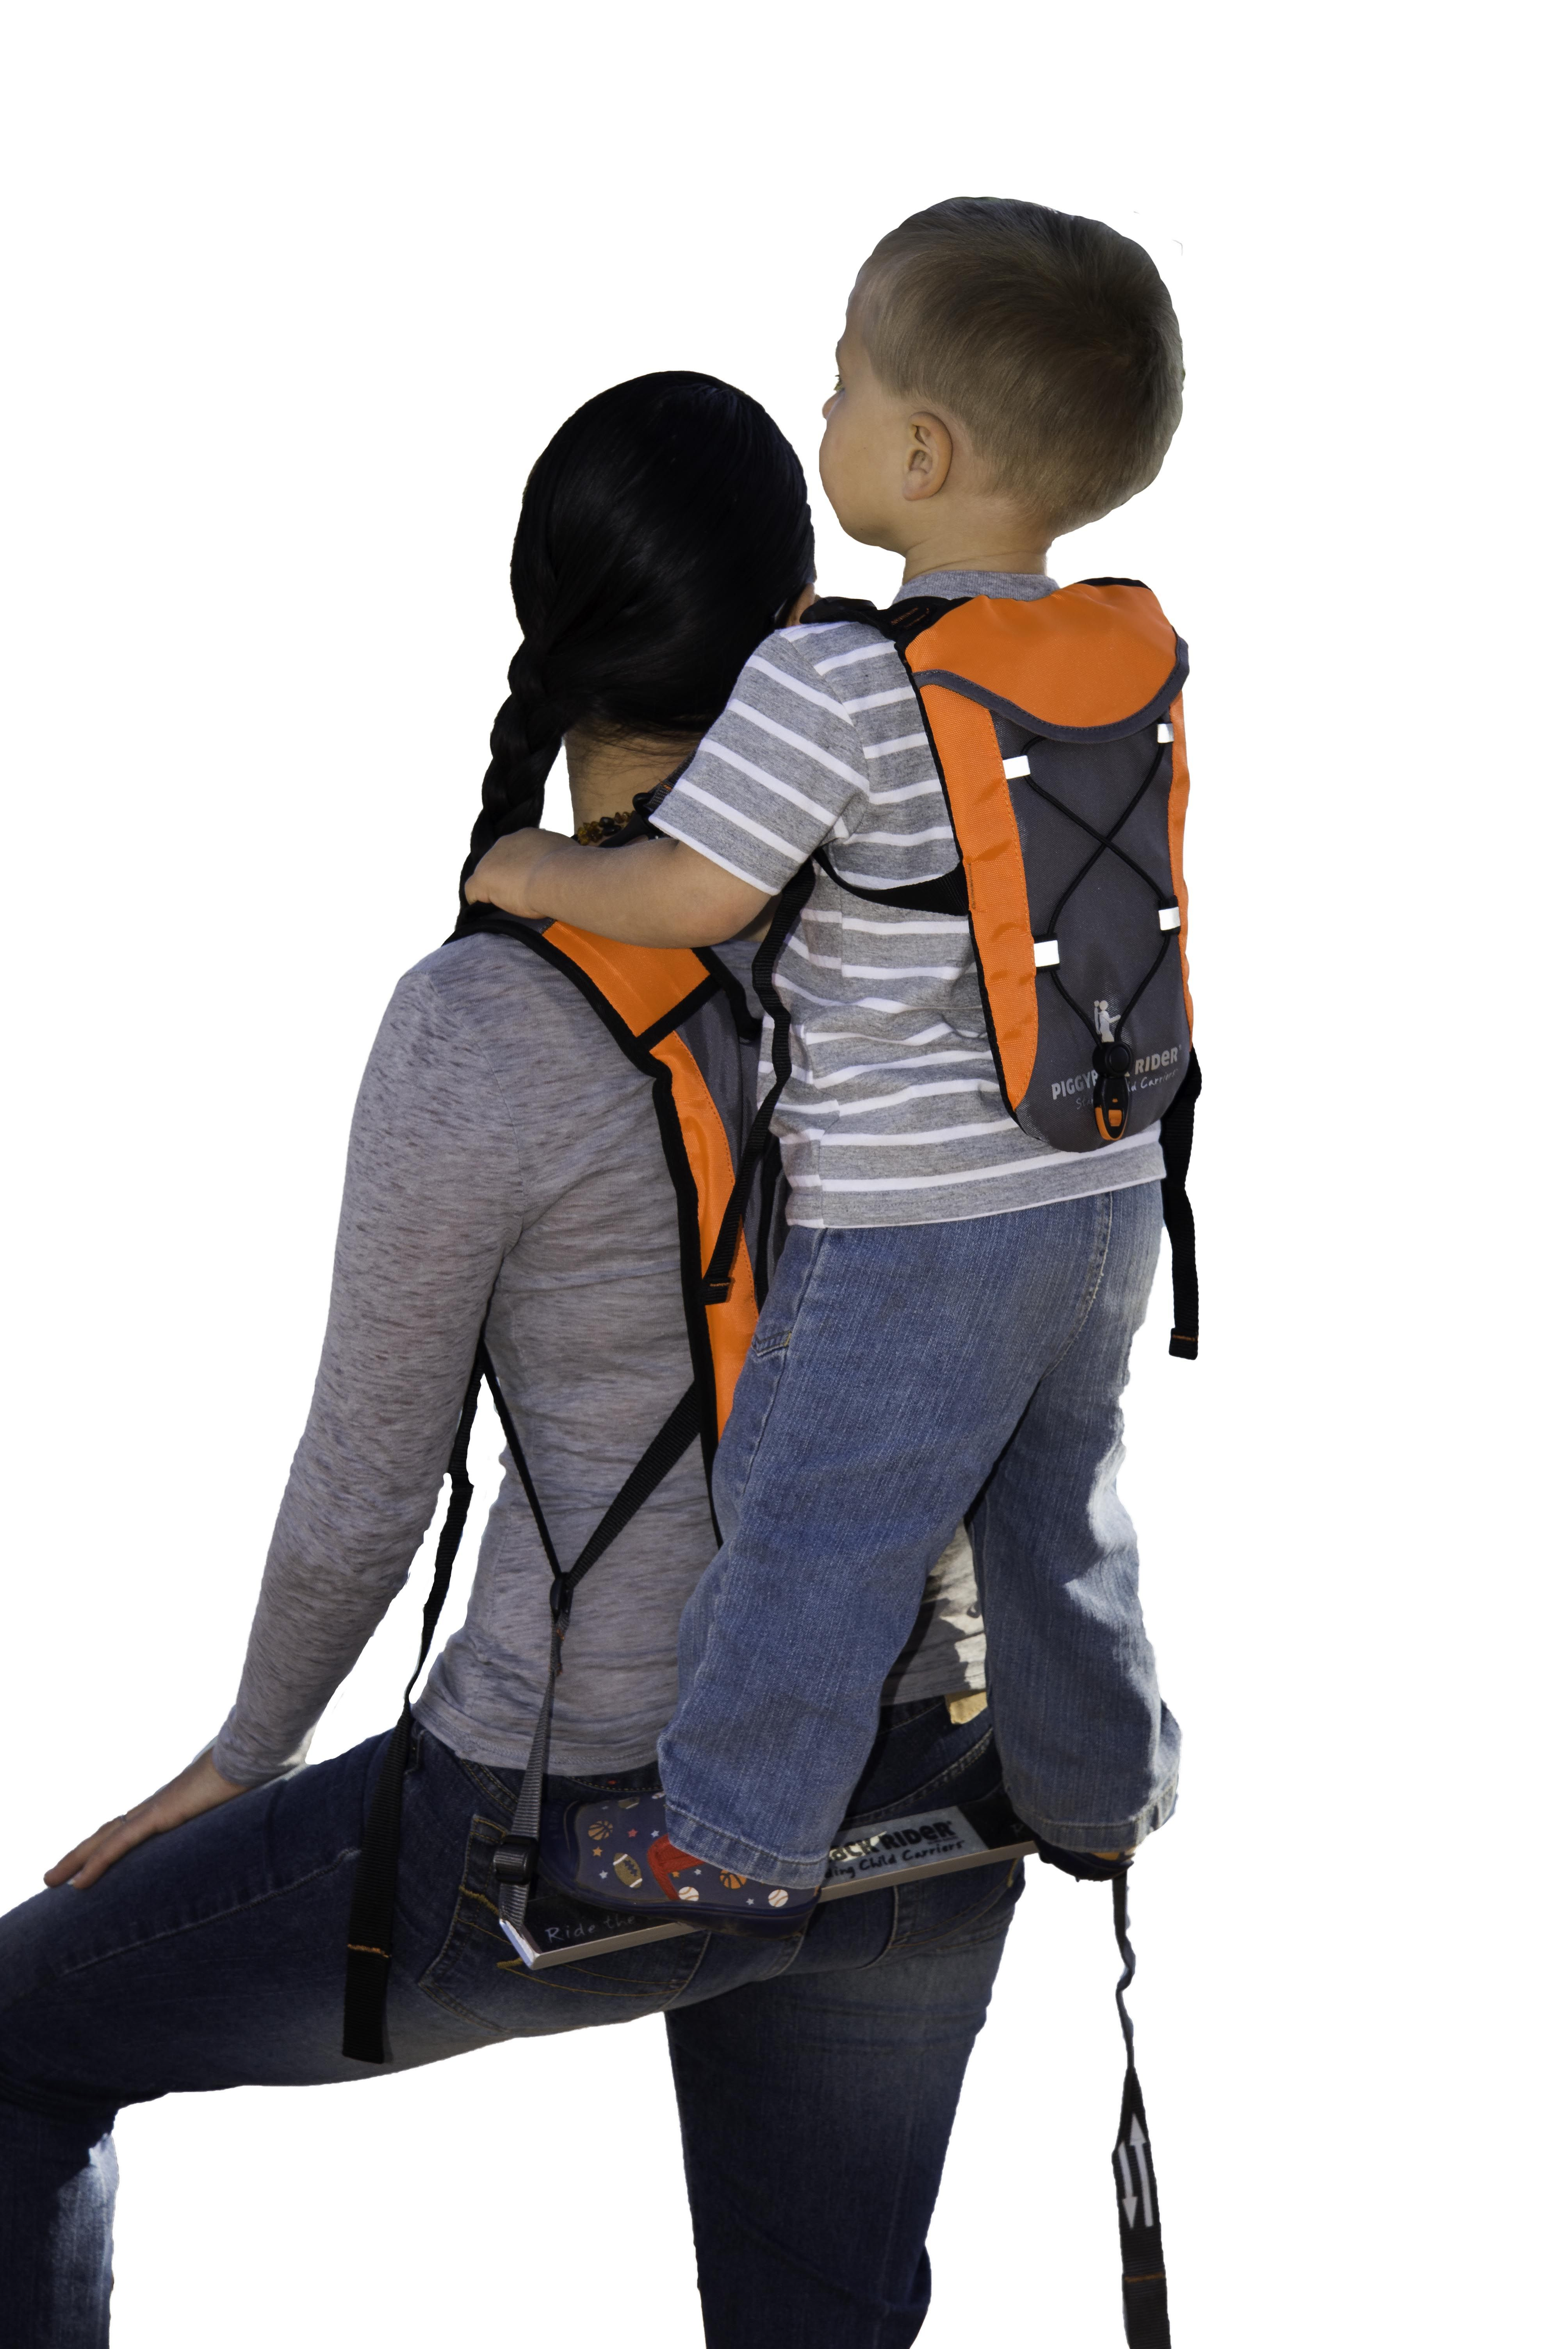 NEW EXPLORER Toddler Carrier Standing Child Carrier with Adult